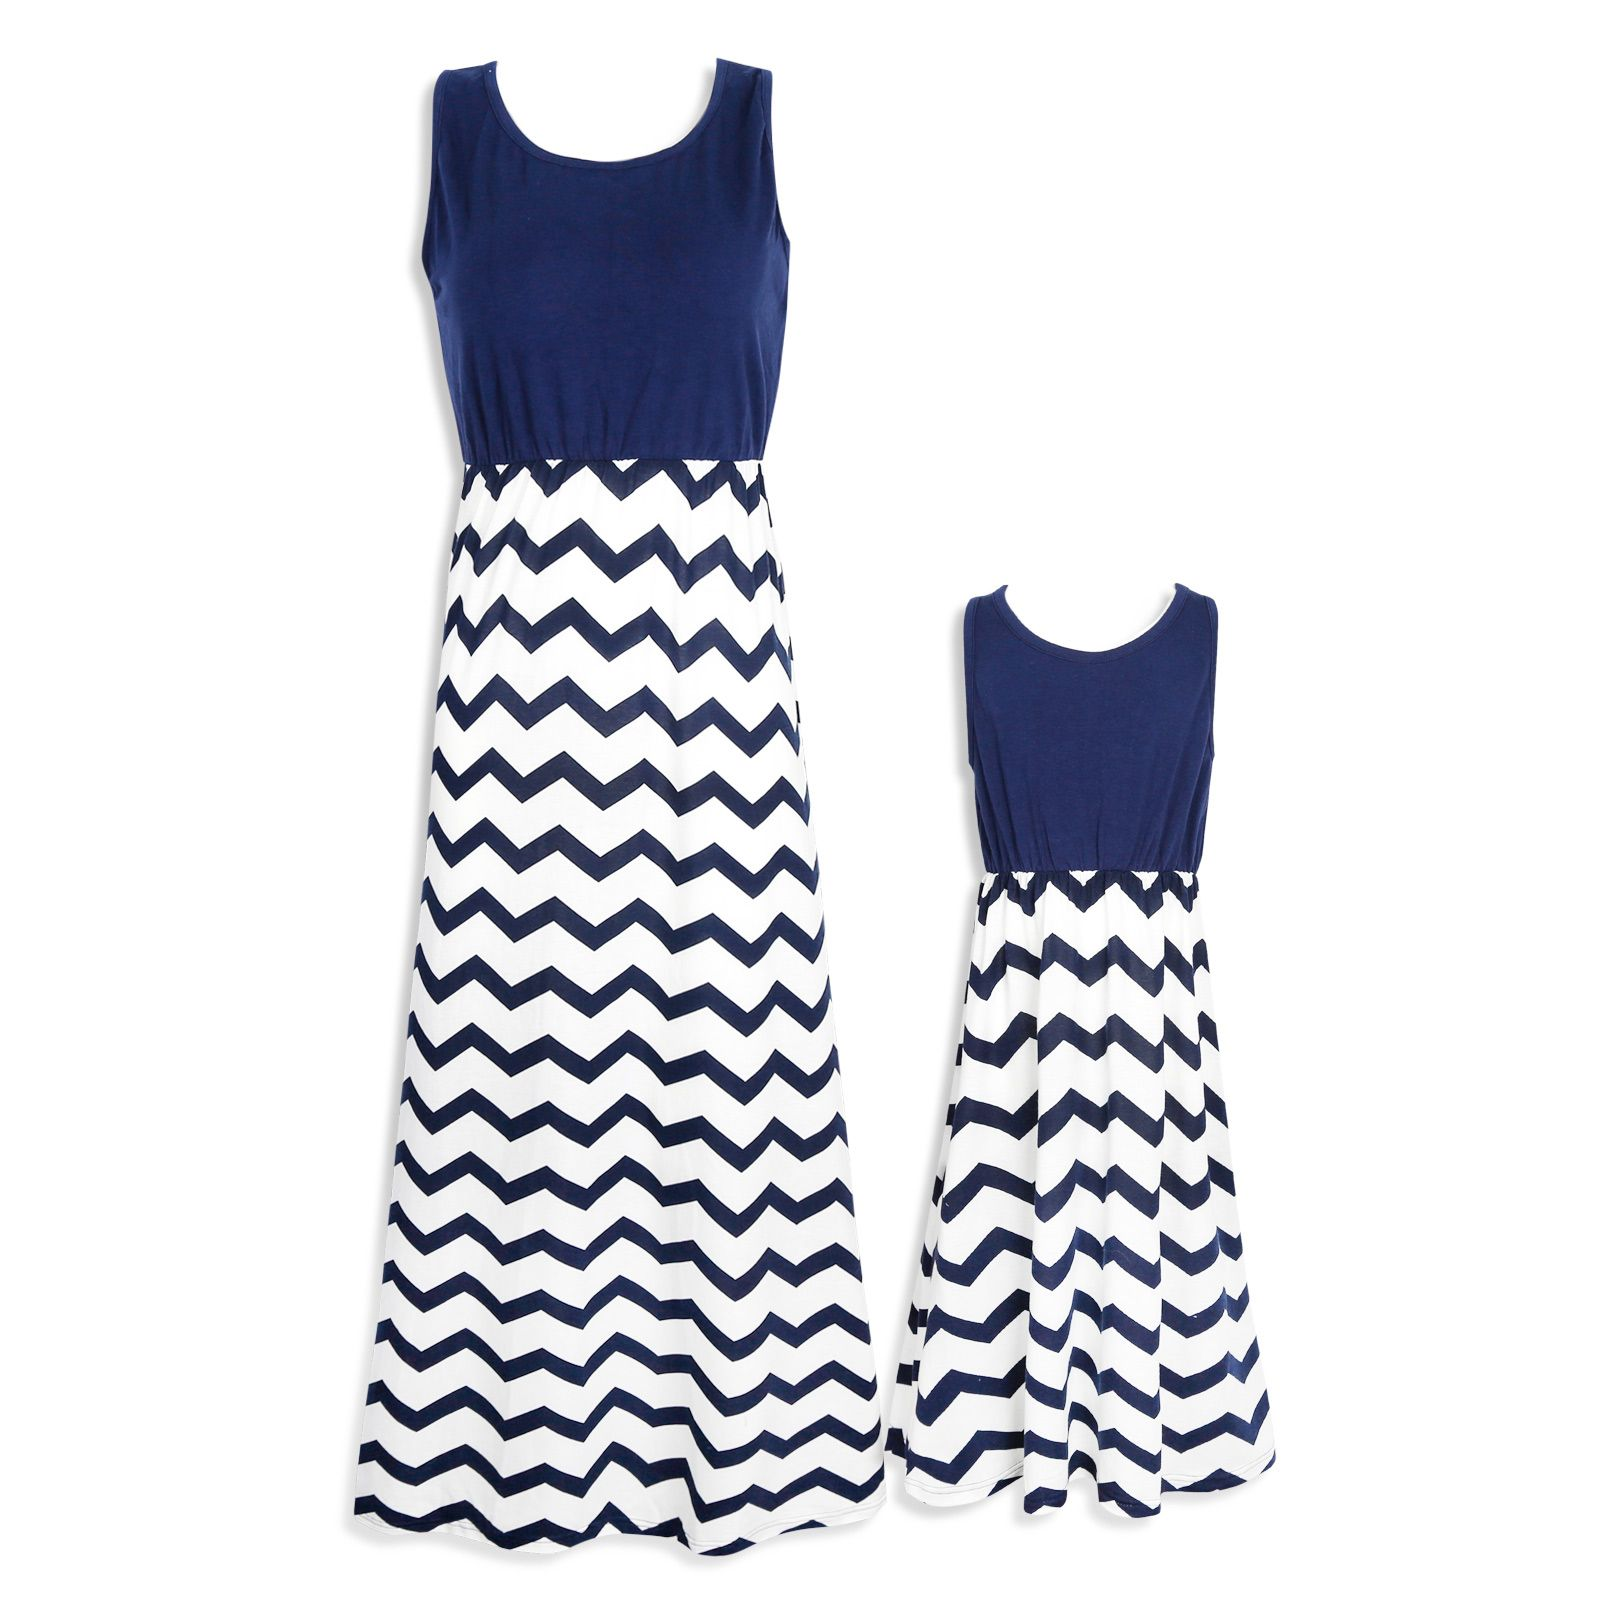 58368591d Check out my new Mommy and Me Stripes Contrast Sleeveless Maxi Dress ,  snagged at a crazy discounted price with the PatPat app.